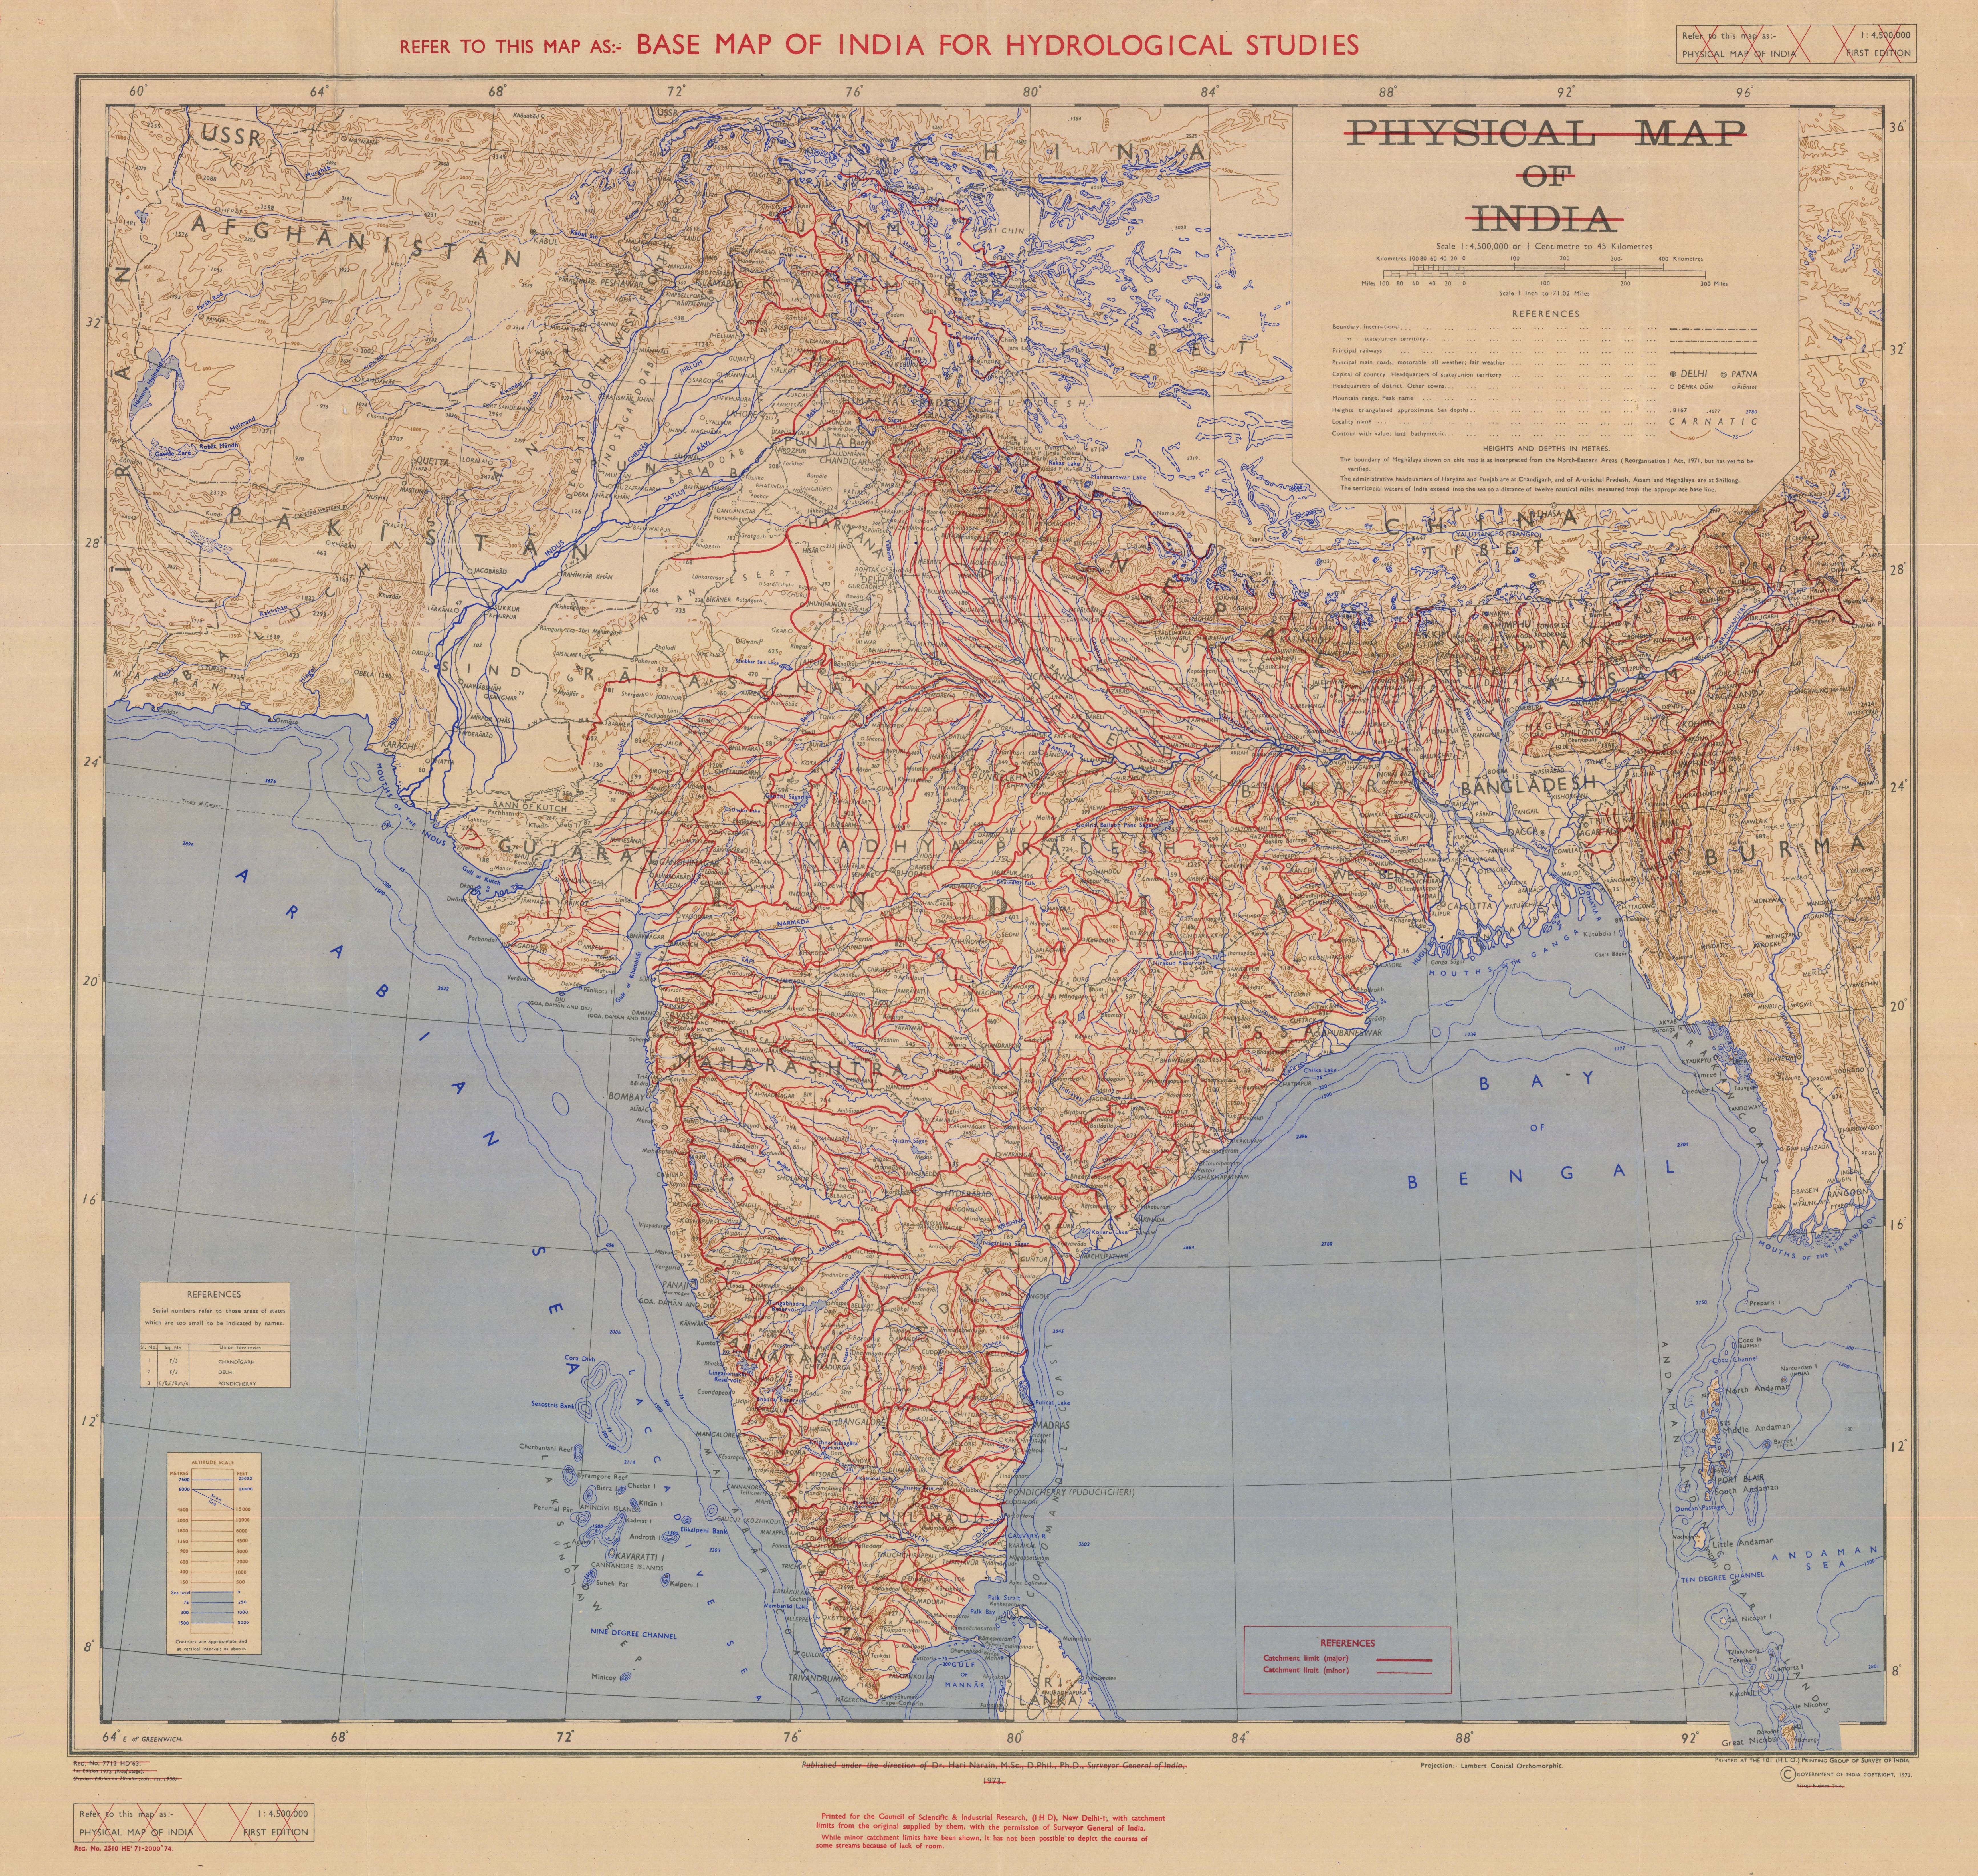 Base map of india for hydrological studies esdac european base map of india for hydrological studies download gumiabroncs Choice Image